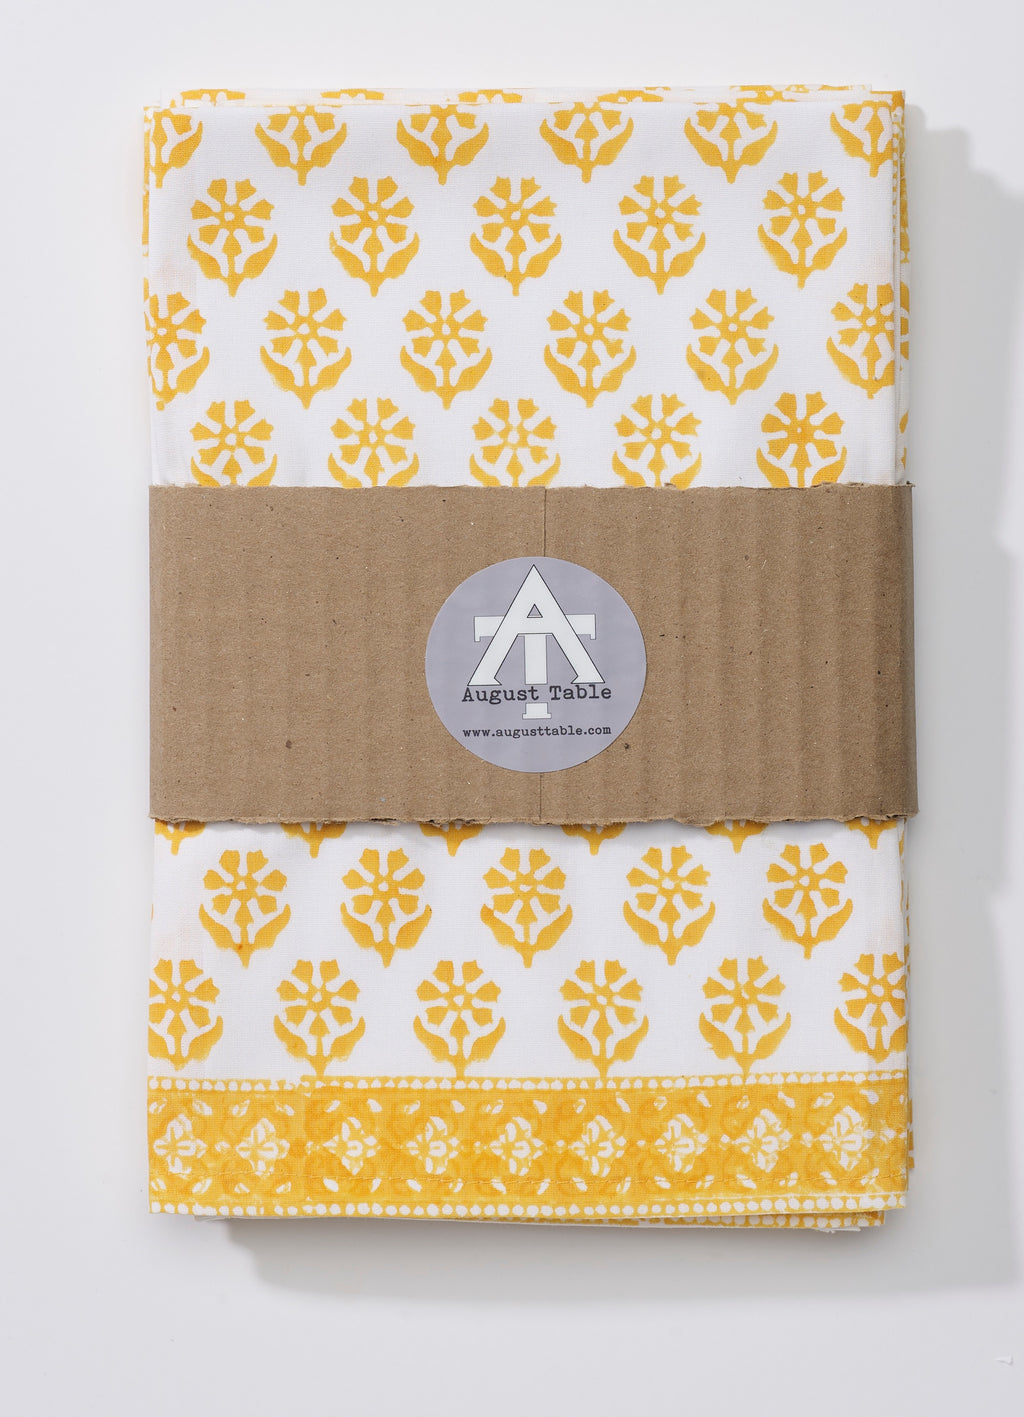 Sequoia Napkins in Tanager Yellow - set of 4